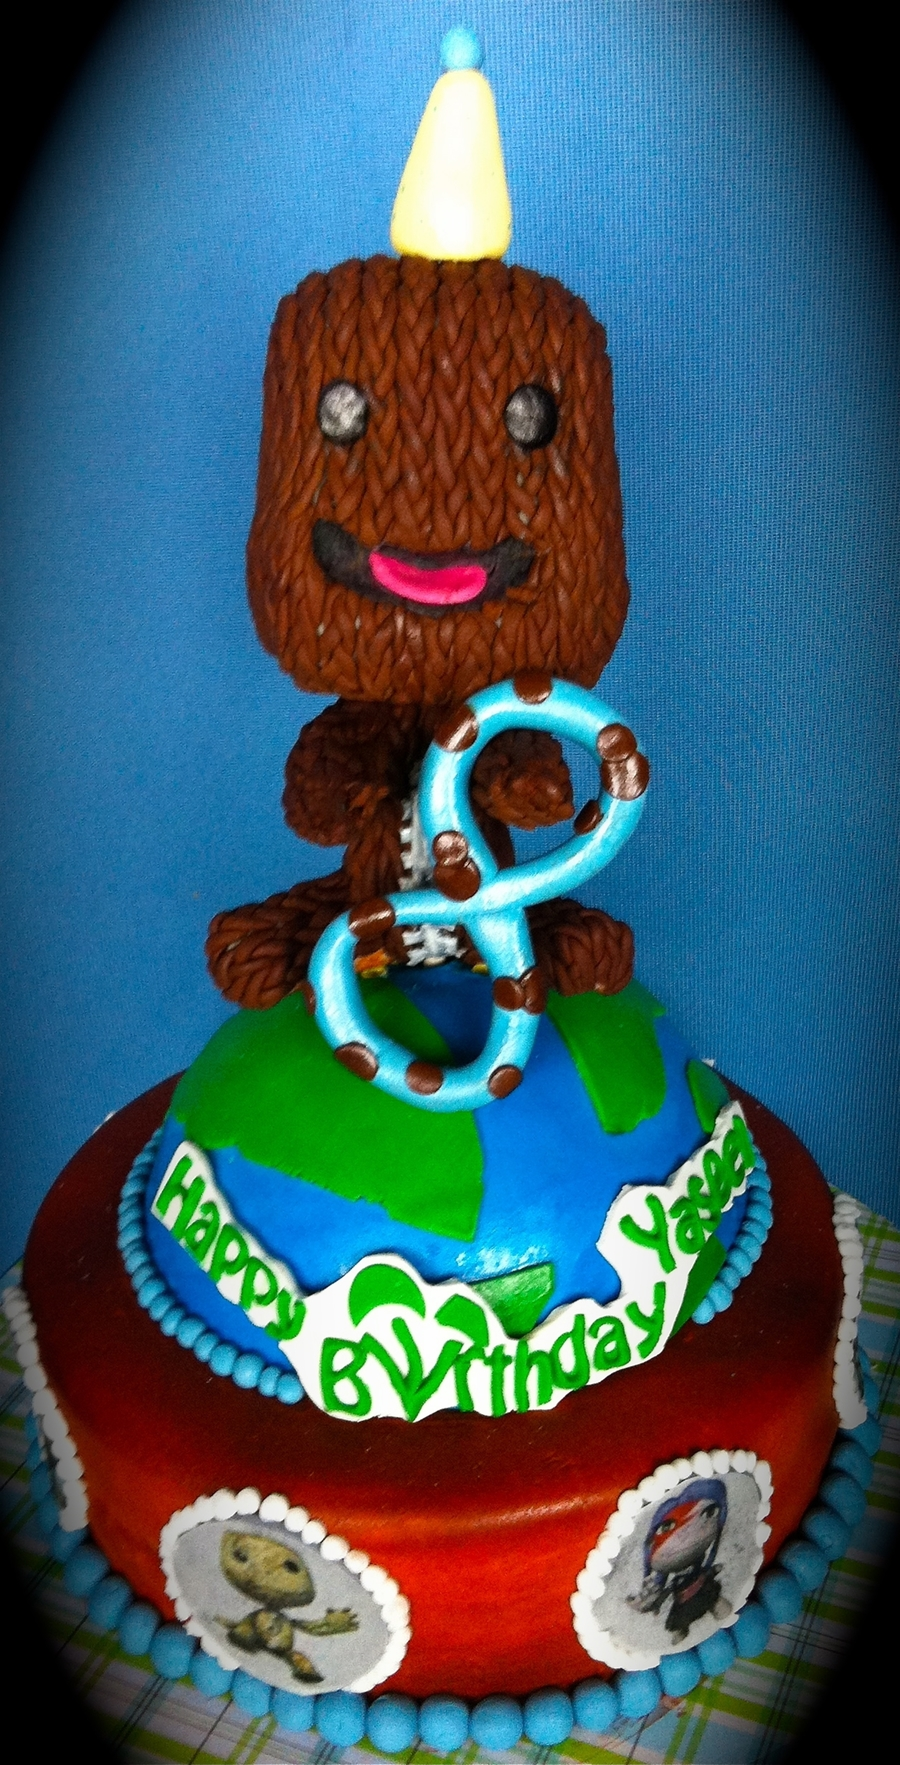 Stupendous Little Big Planet Cakecentral Com Birthday Cards Printable Riciscafe Filternl